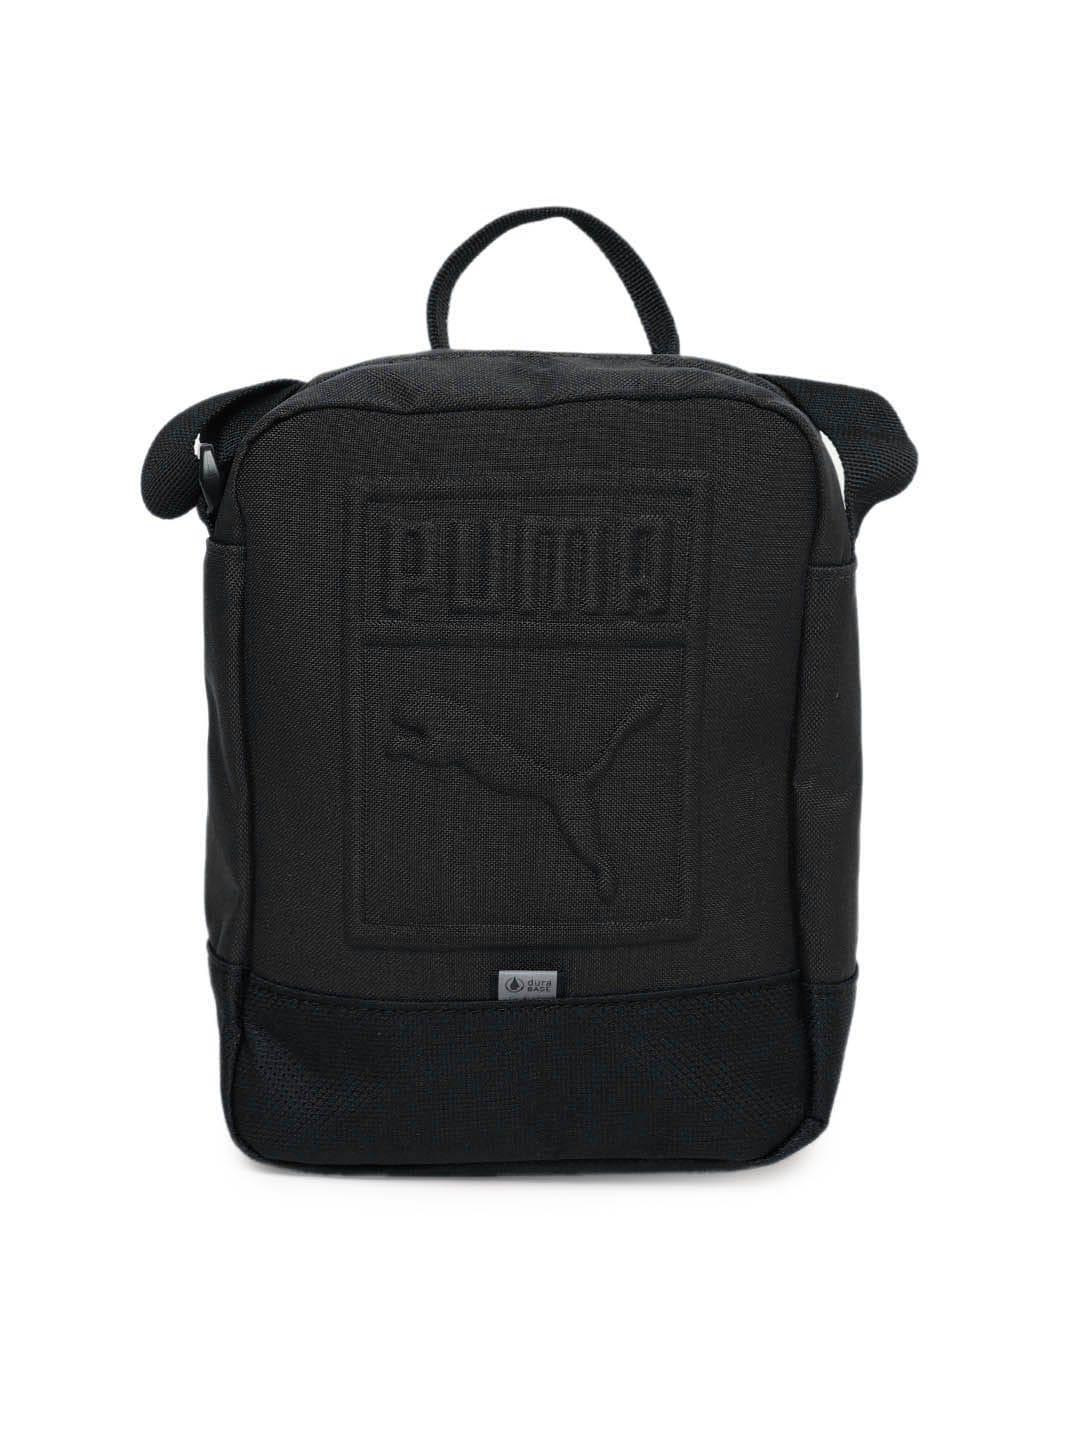 9b5dd8a5acef Puma Bag - Buy Puma Bags Online in India